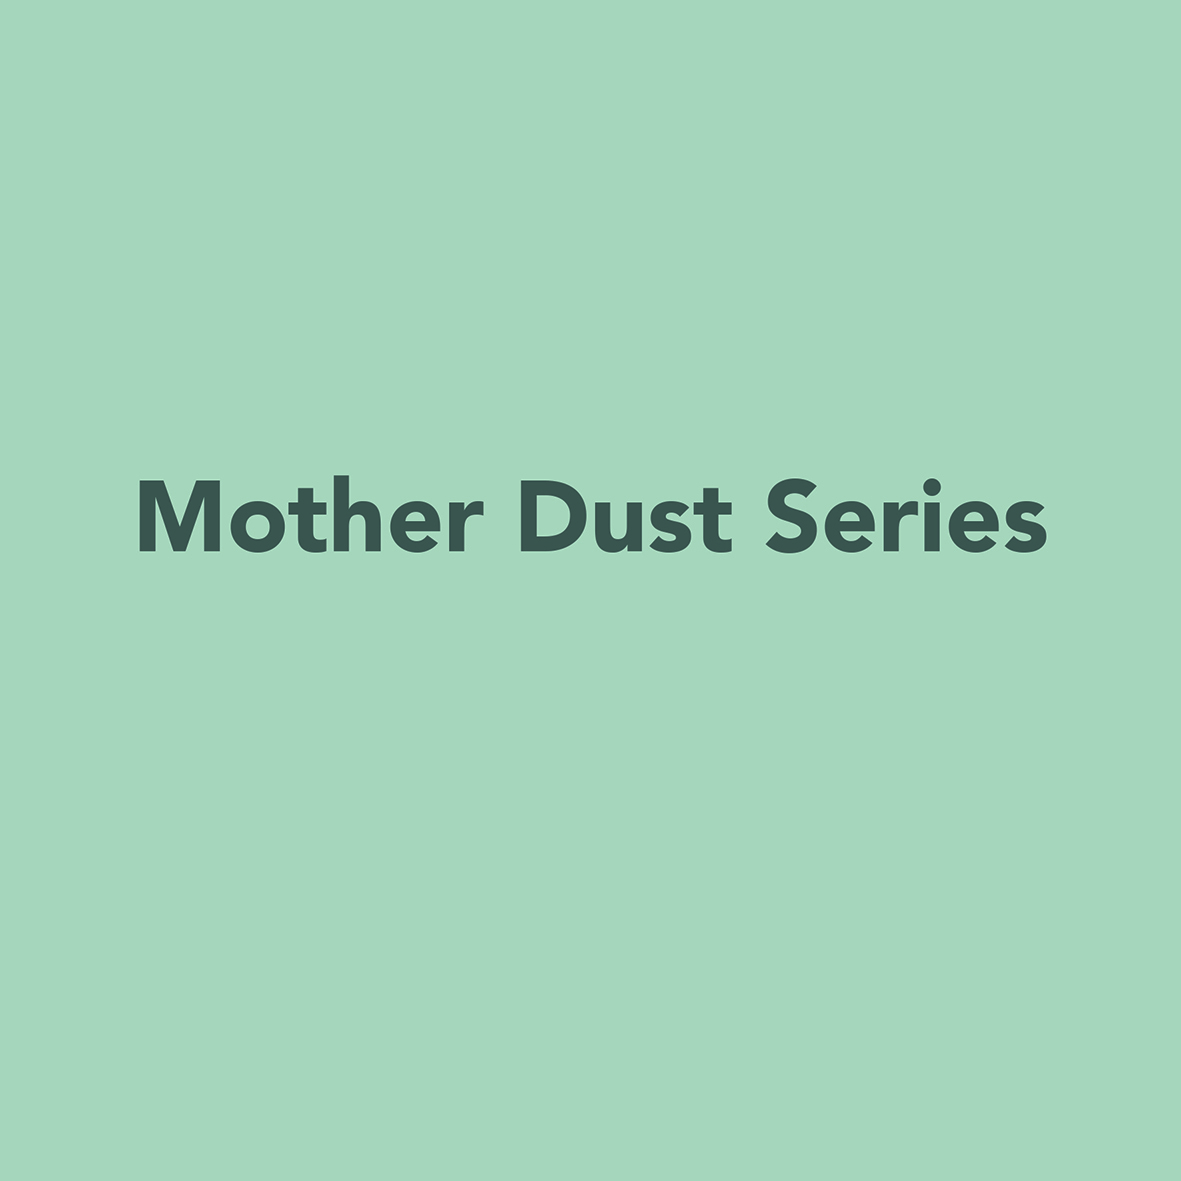 Mother Dust Series